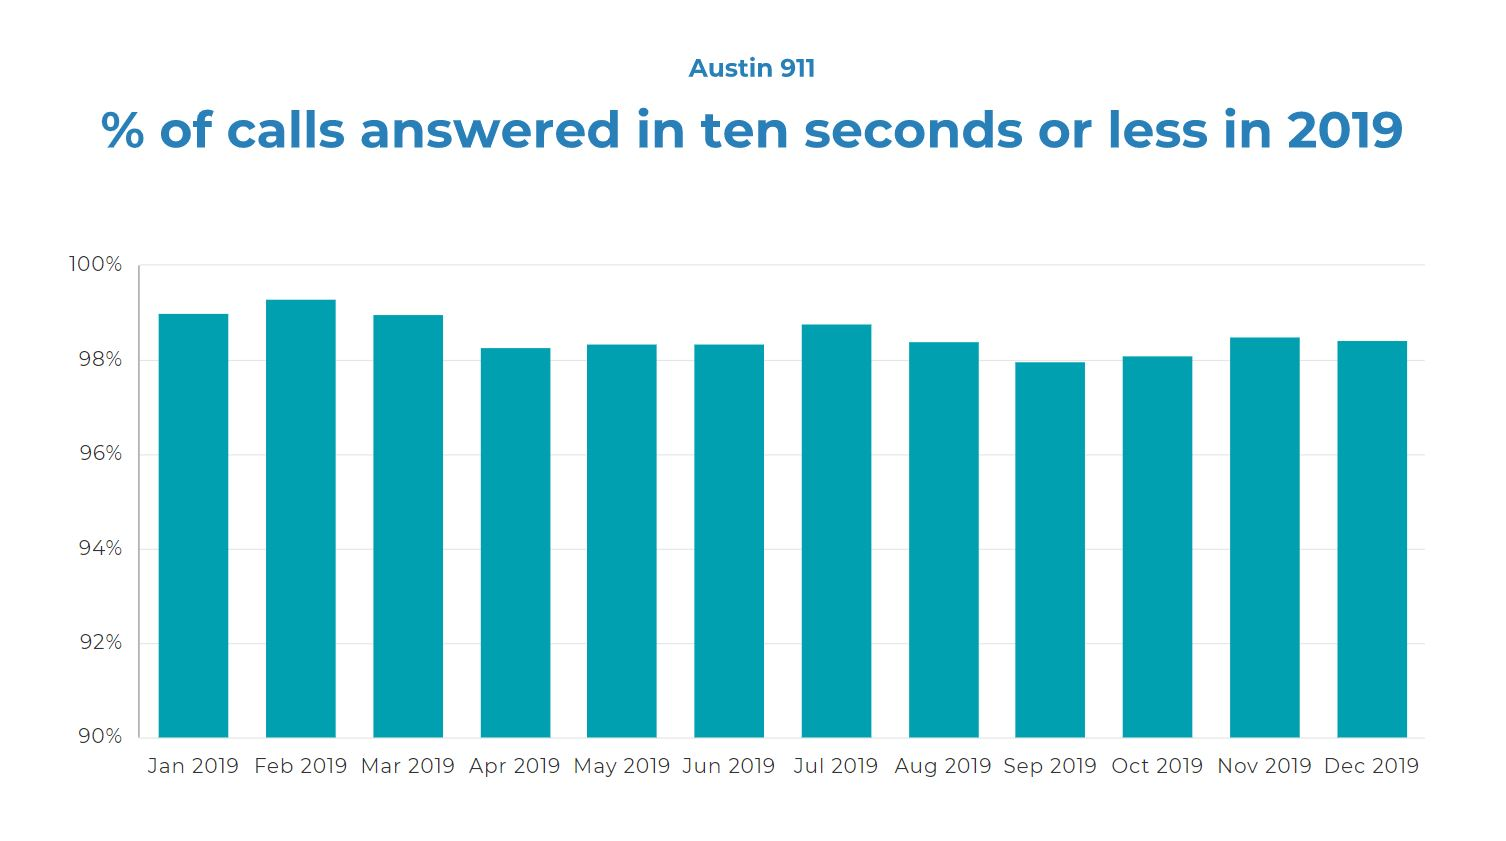 THROUGH THE YEARS: percent of calls answered by Austin 911 within ten seconds. For the most part in 2019 and 2020, 911 operators answered around 98% of calls within 10 seconds. The numbers have slipped slightly in 2021. Operators answered 91% of calls within ten seconds in February 2021, the month of the winter storm. Austin still exceeds the national standard for call answer times.